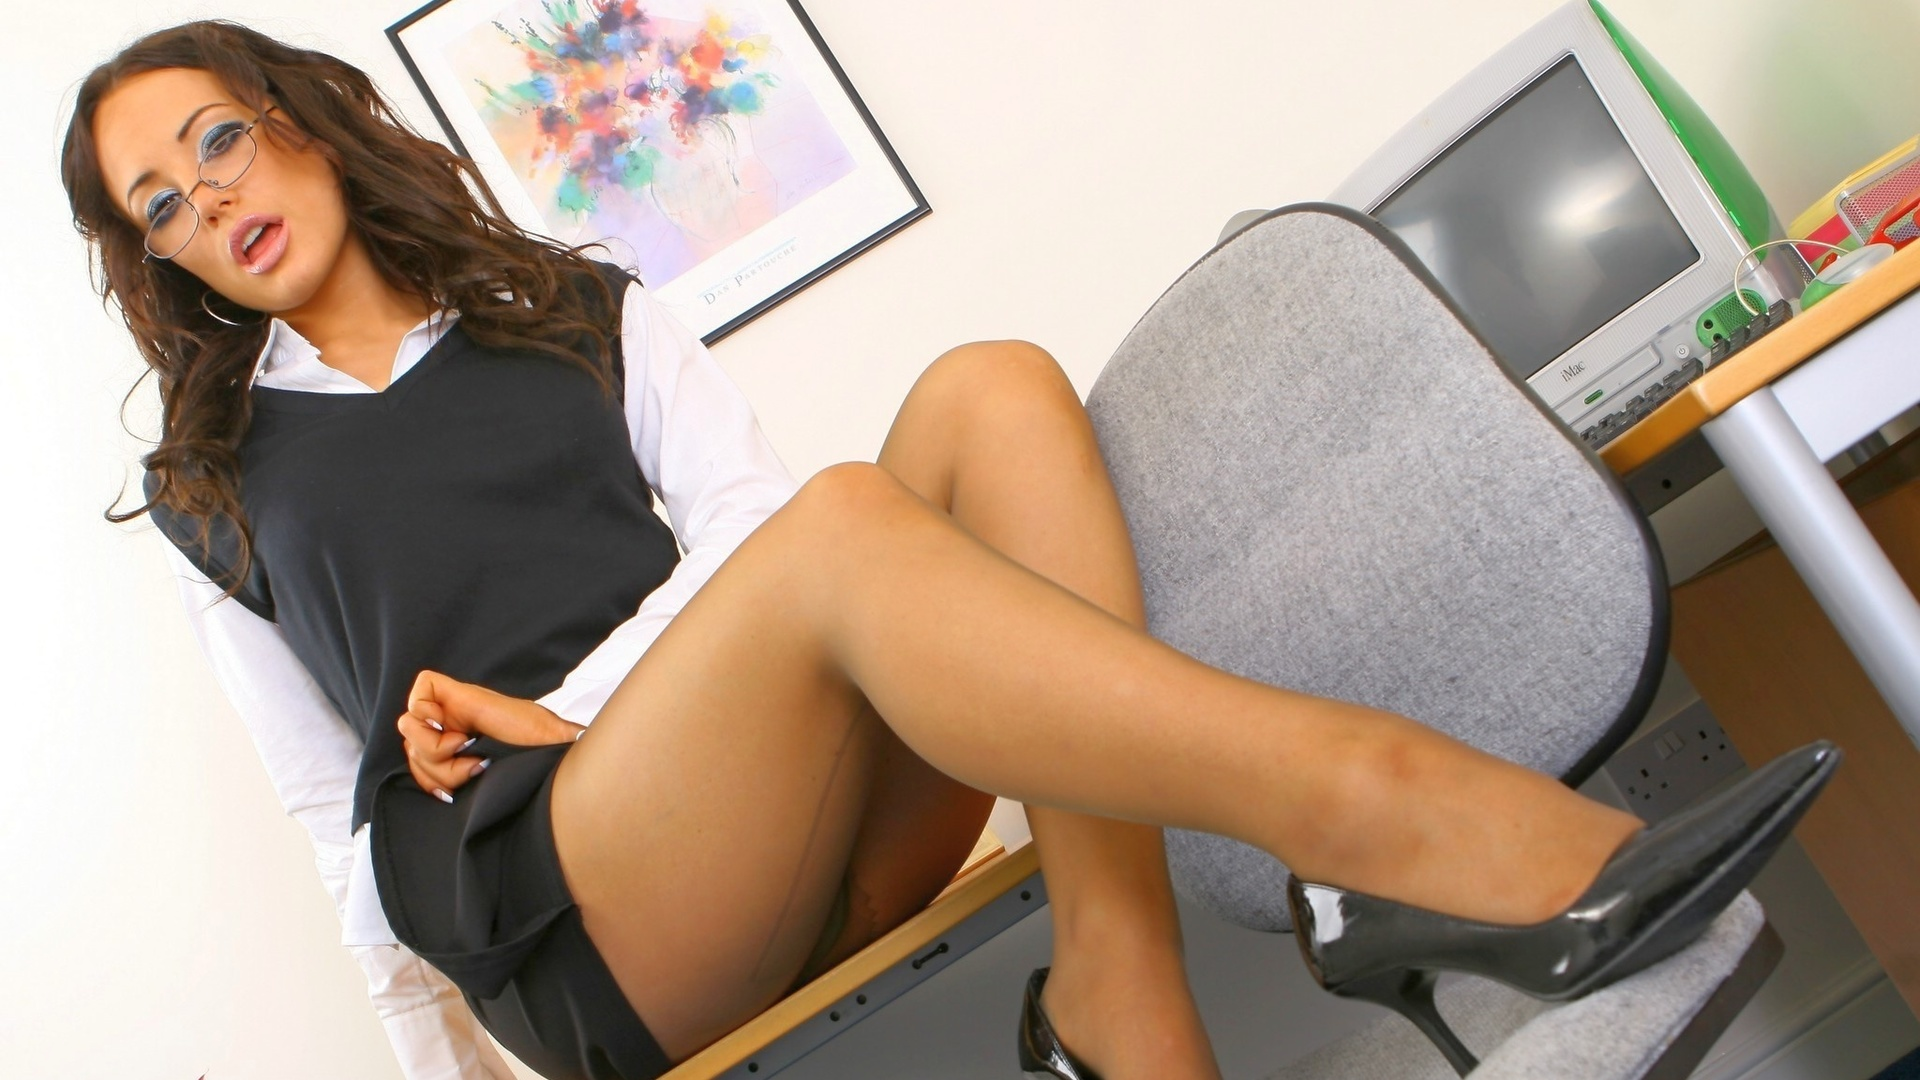 hot-office-girls-seduction-video-masturbation-instruction-encouragement